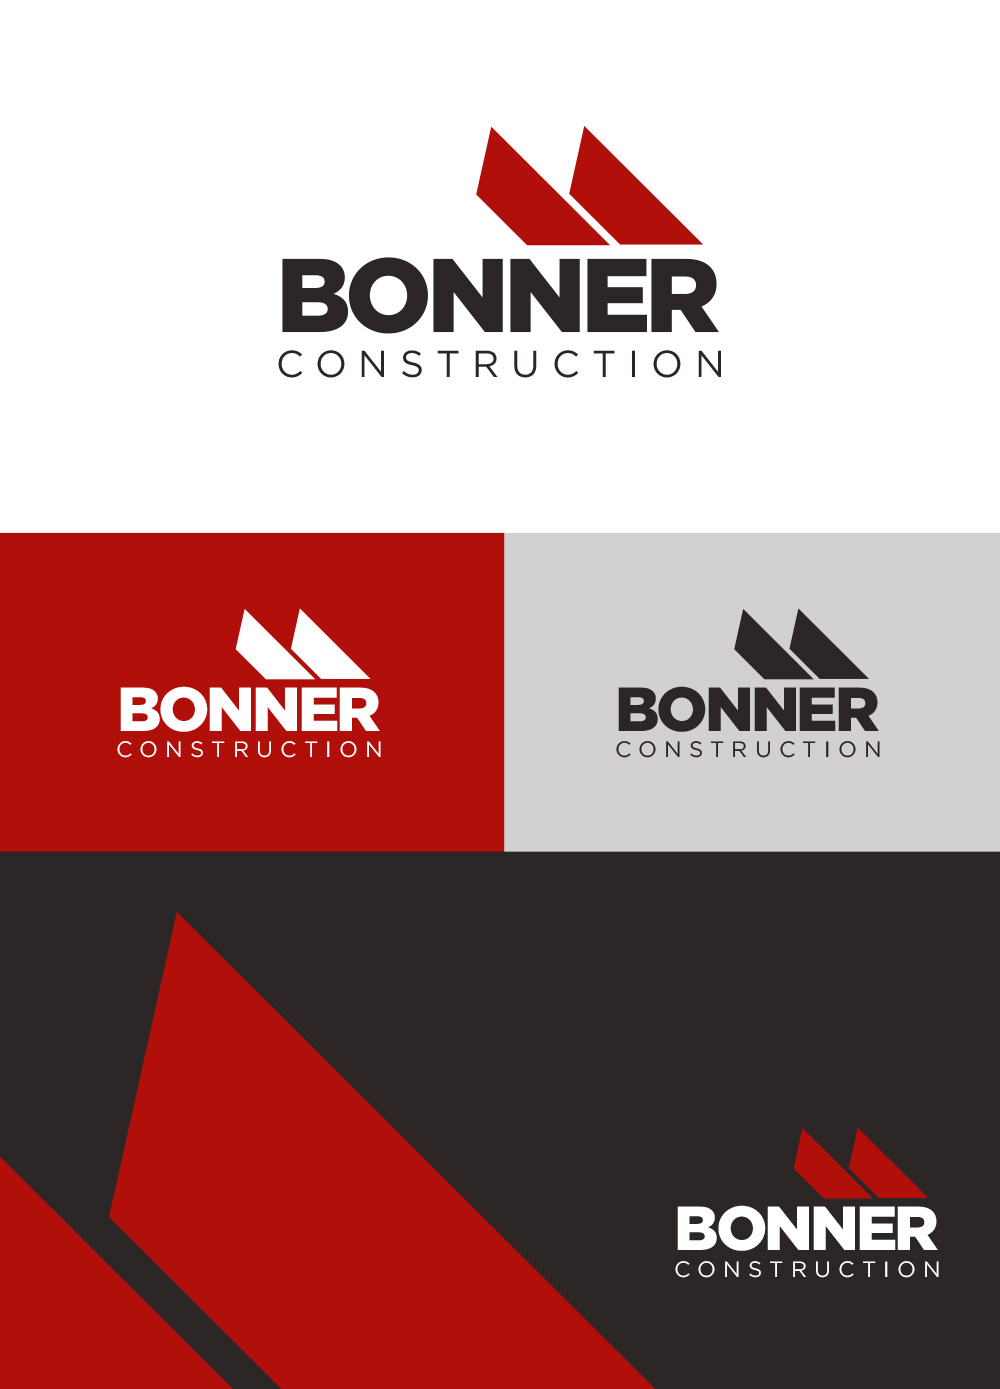 bonner Construction logo